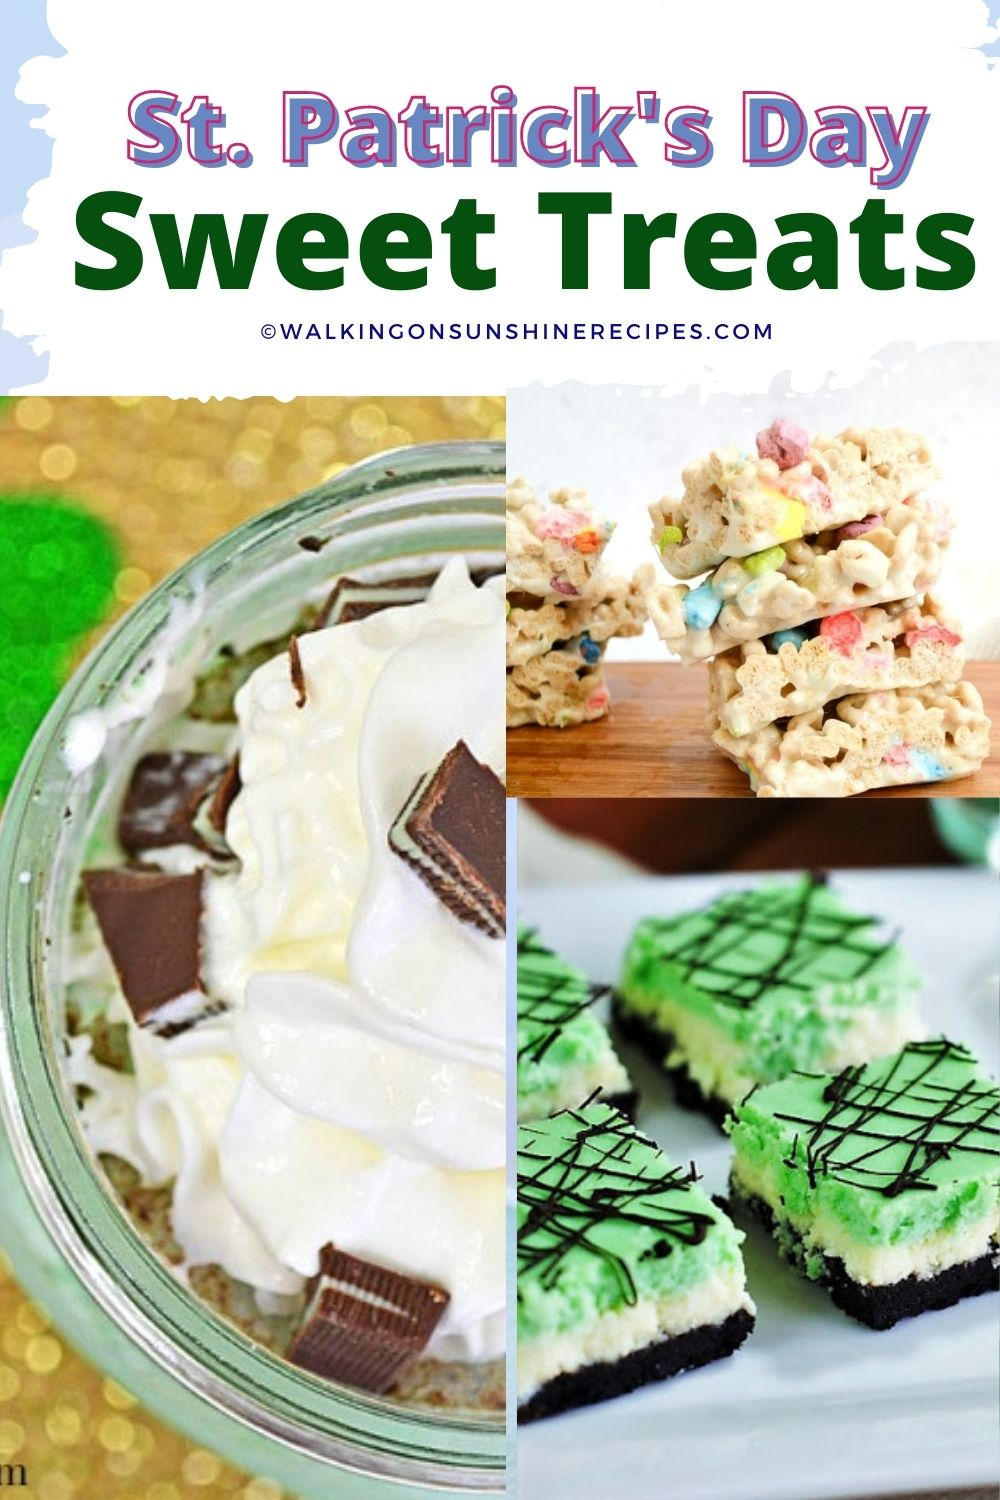 Mint candy bars, soda and brownies.